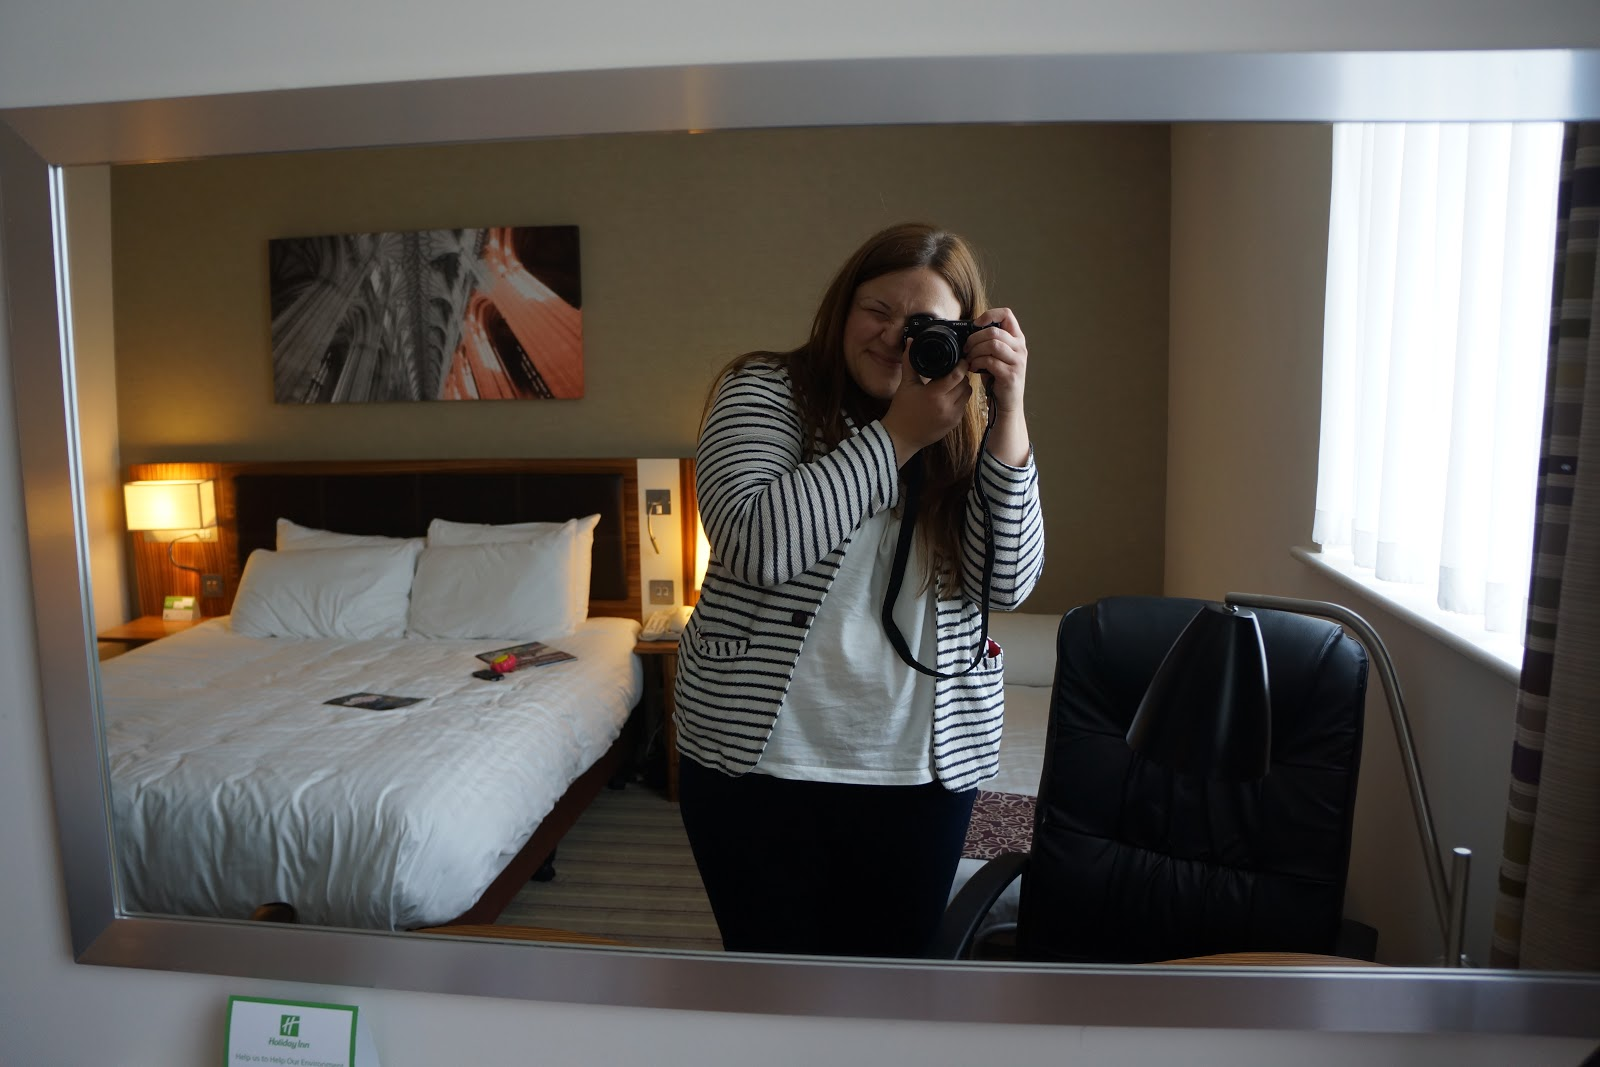 a mirror and a picture of a hotel room